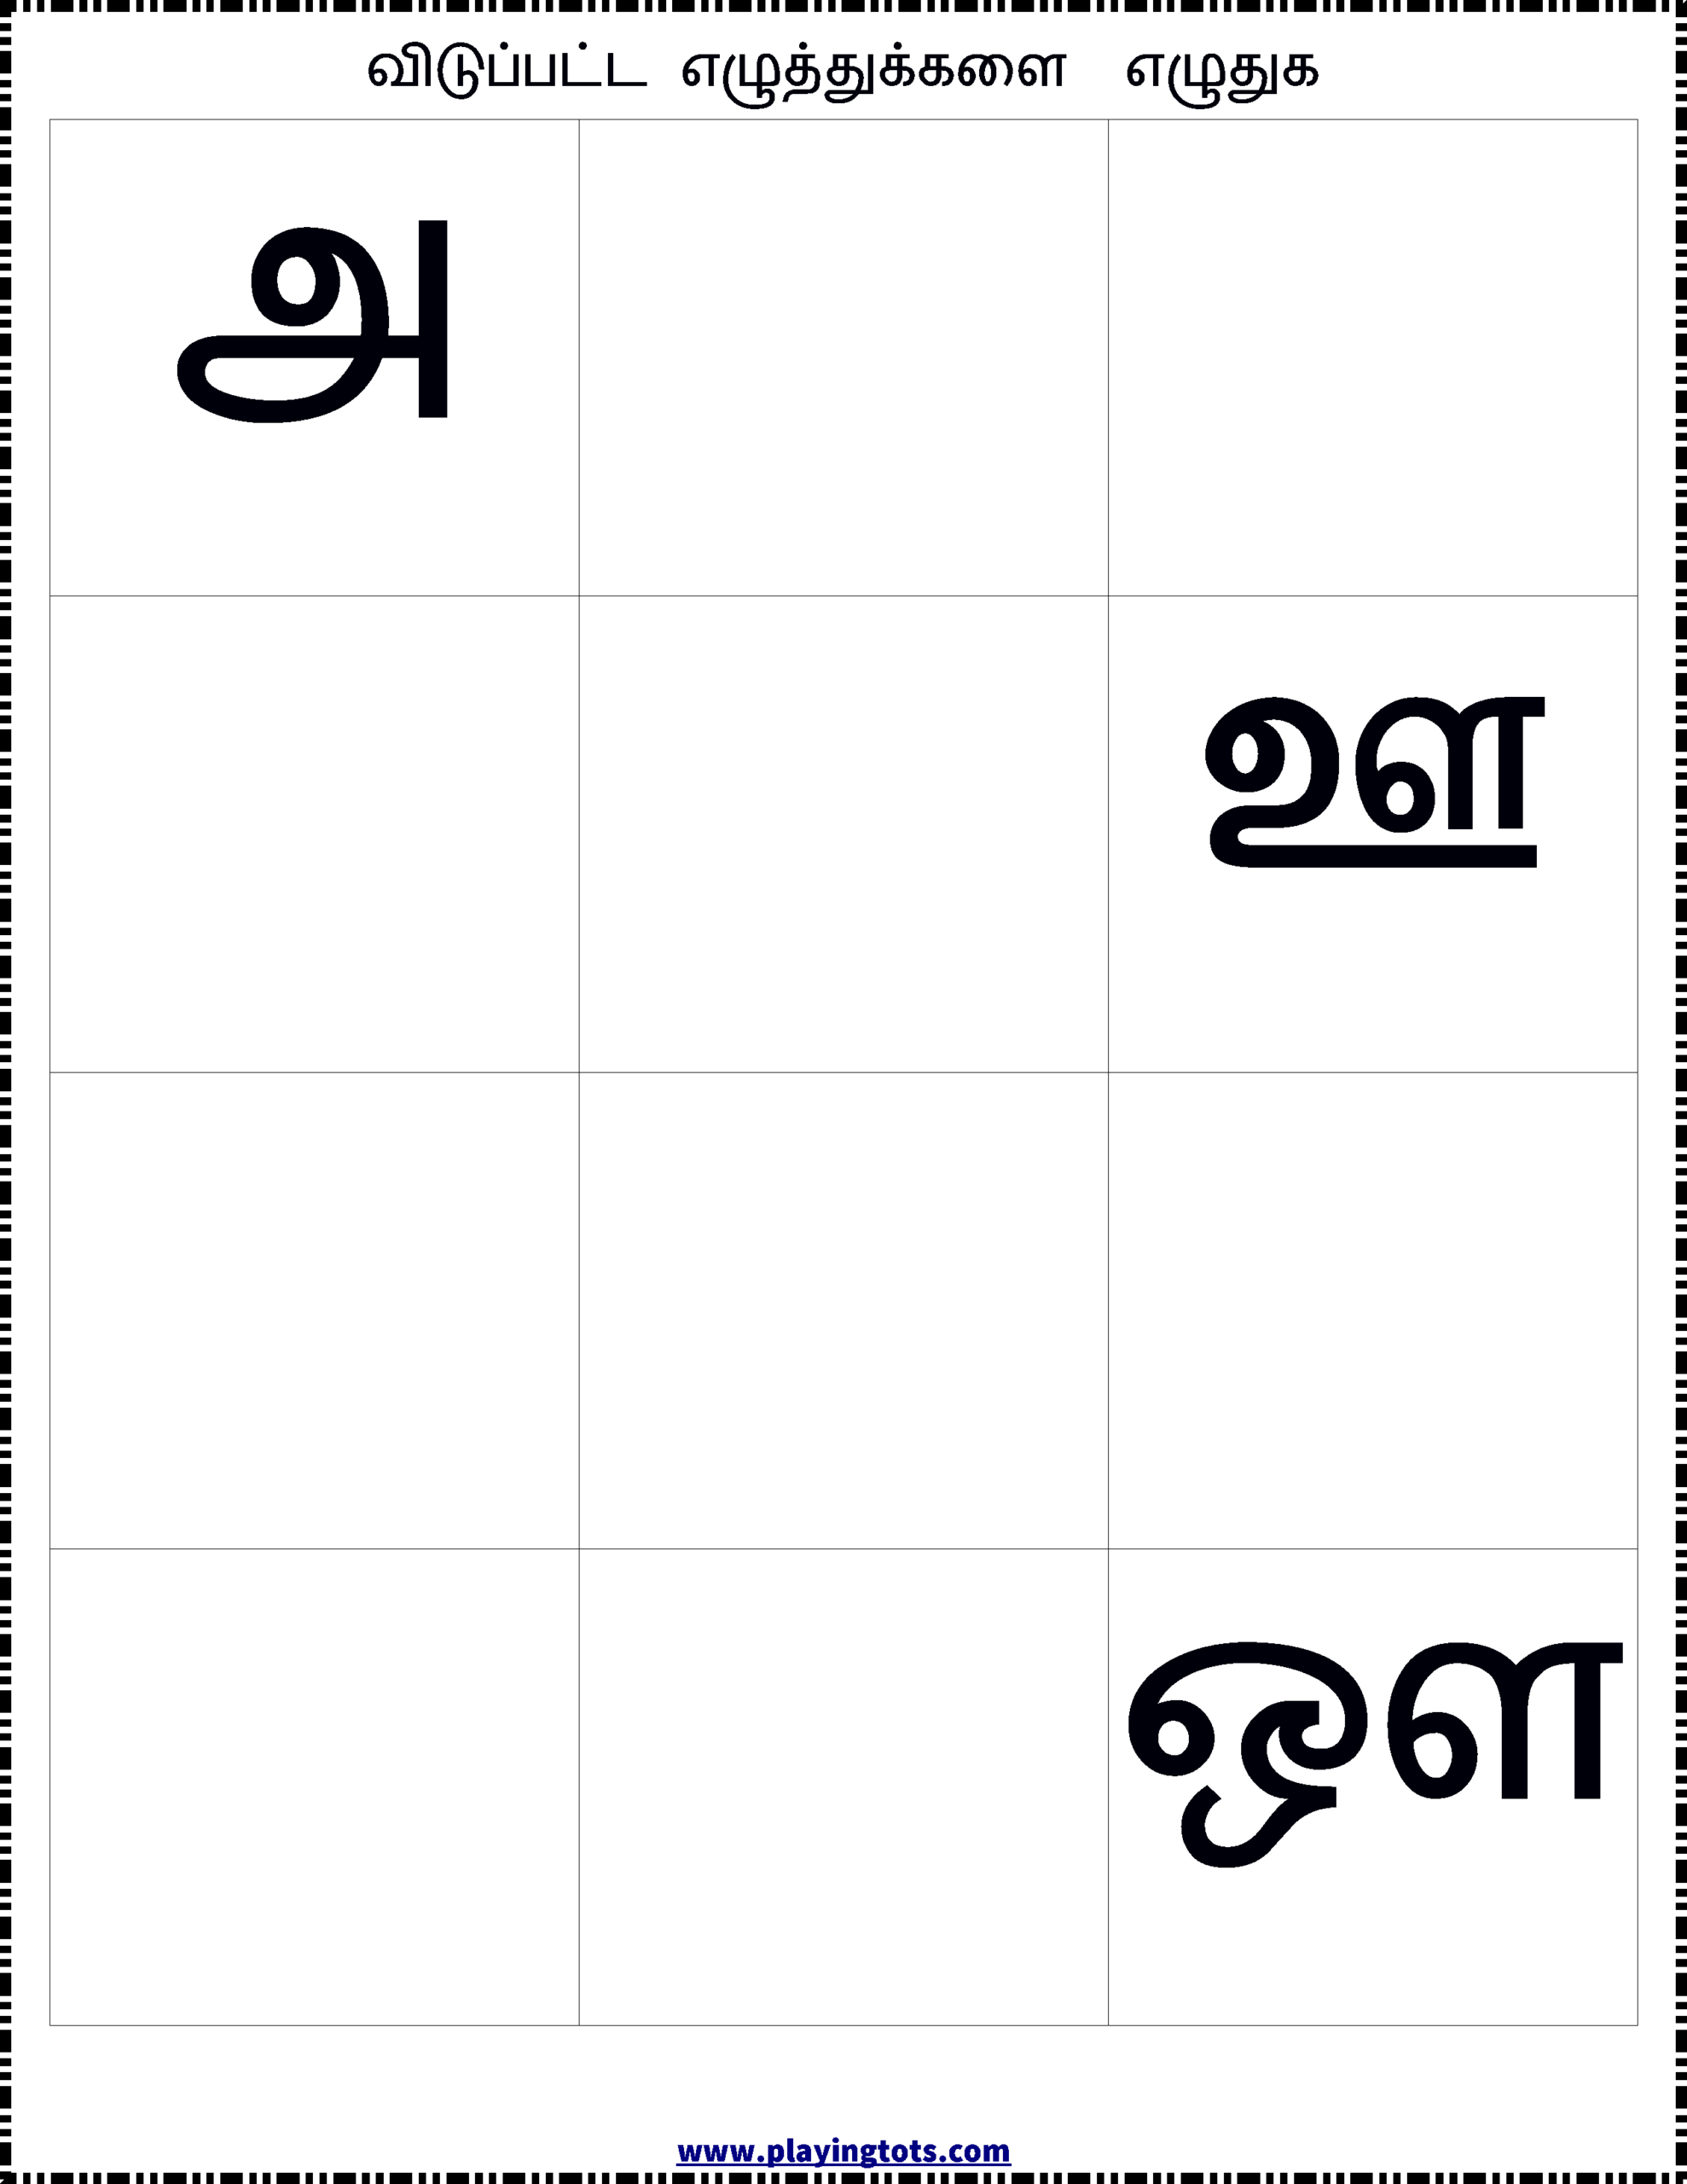 உயிர் எழுத்துக்கள் - Worksheet Keywords regarding Vowel Alphabet Worksheets